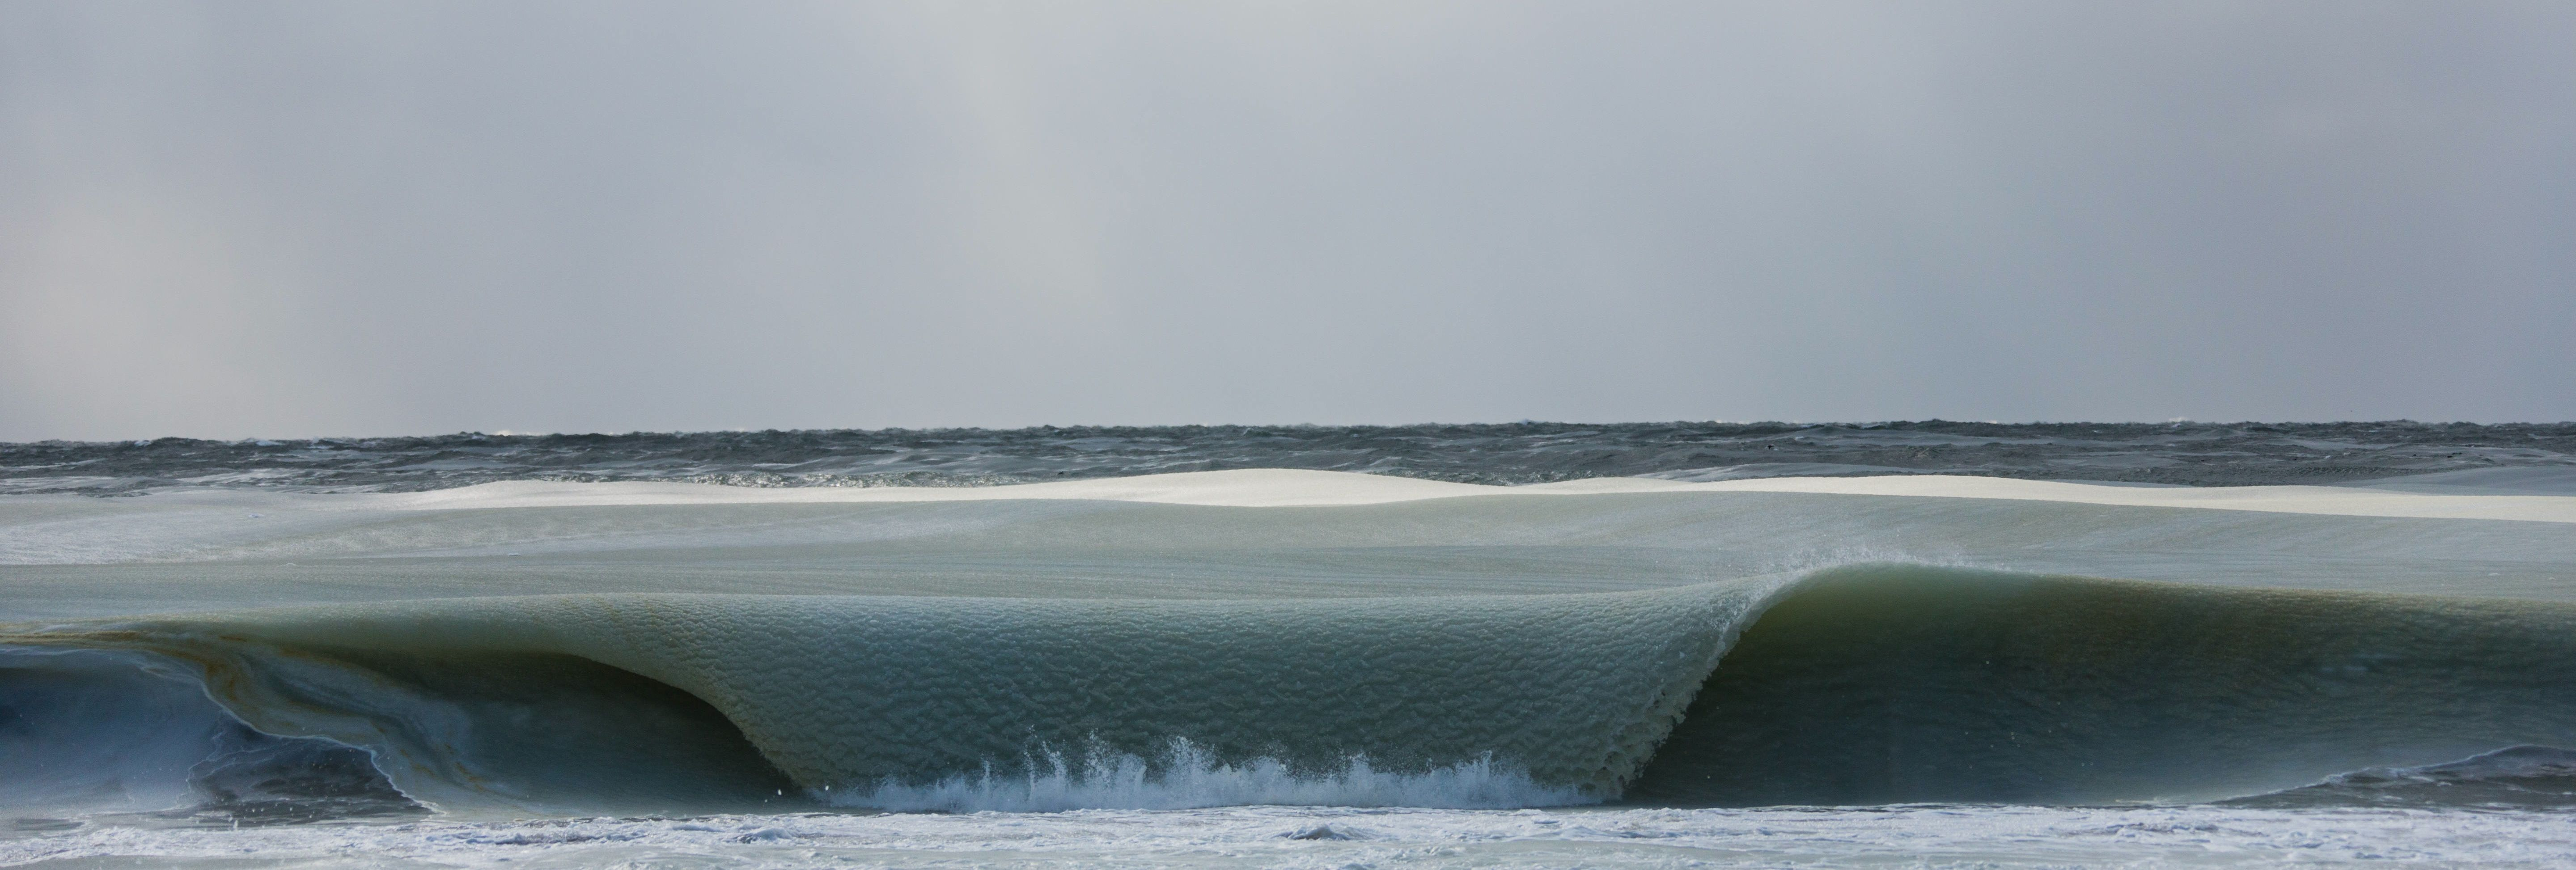 Frozen wave of Nantucket. Photo by Jonathan Nimerfroh used by permission